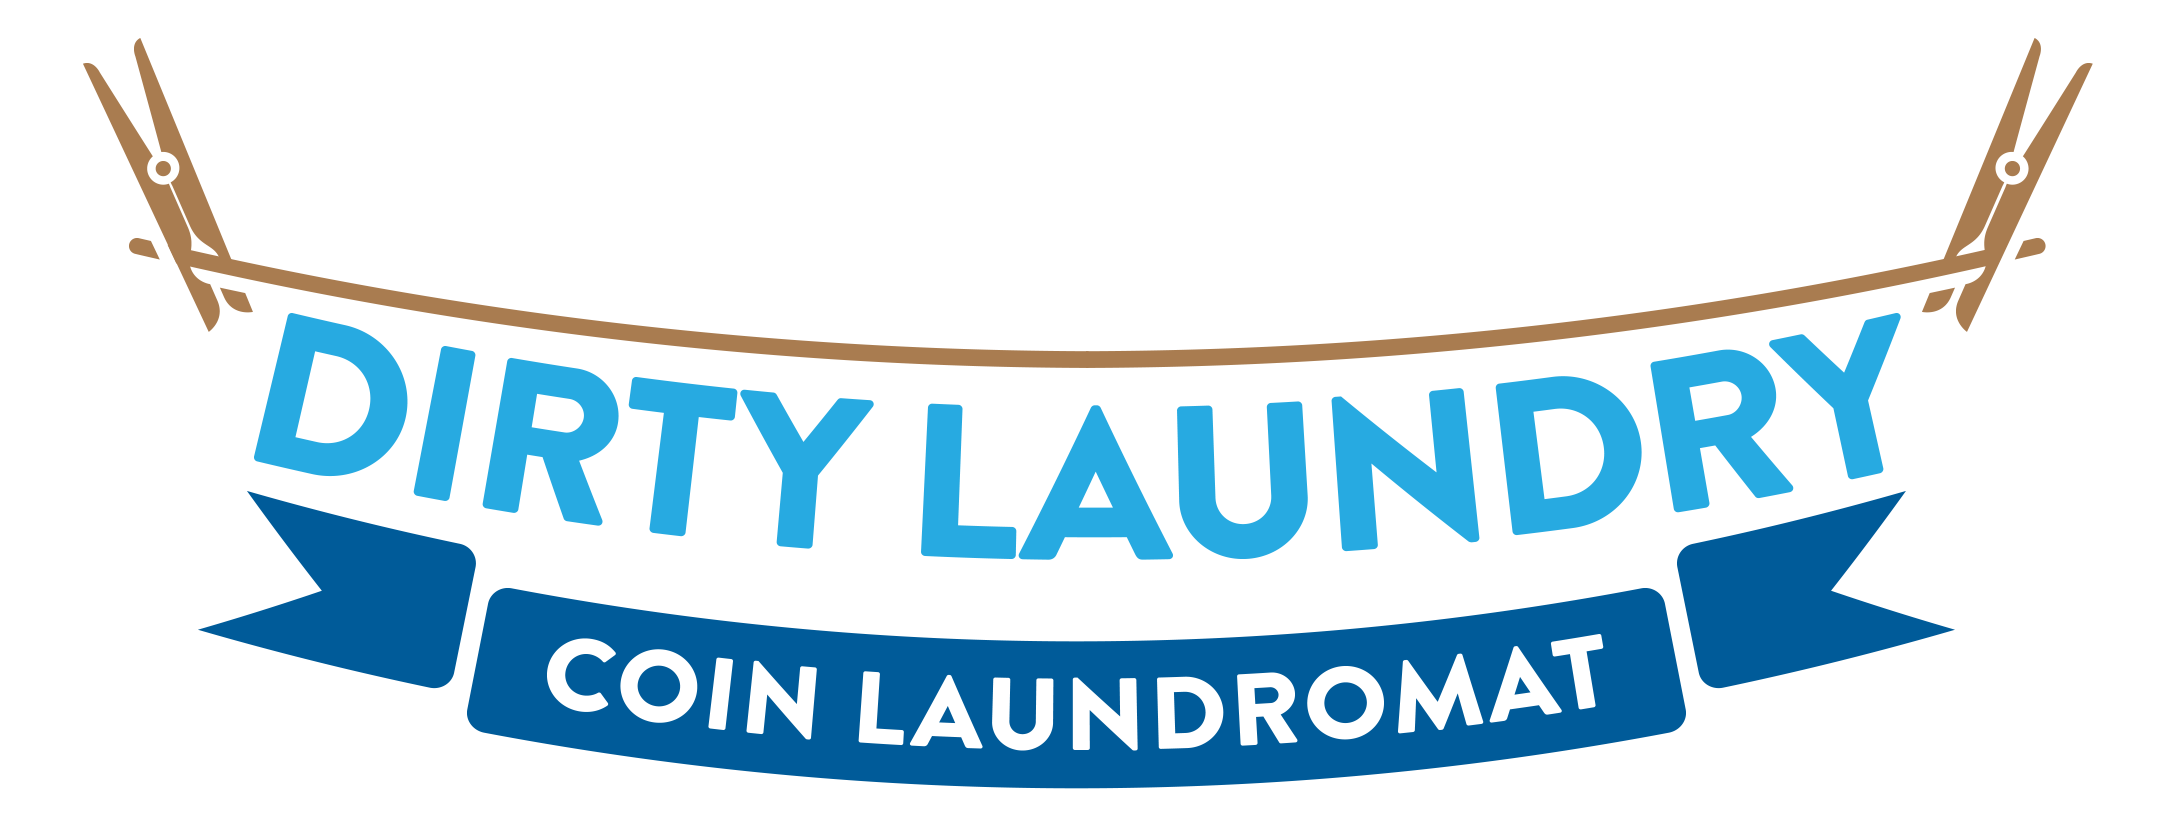 Elgin's #1 Coin Laundromat - Dirty Laundry Coin Laundromat